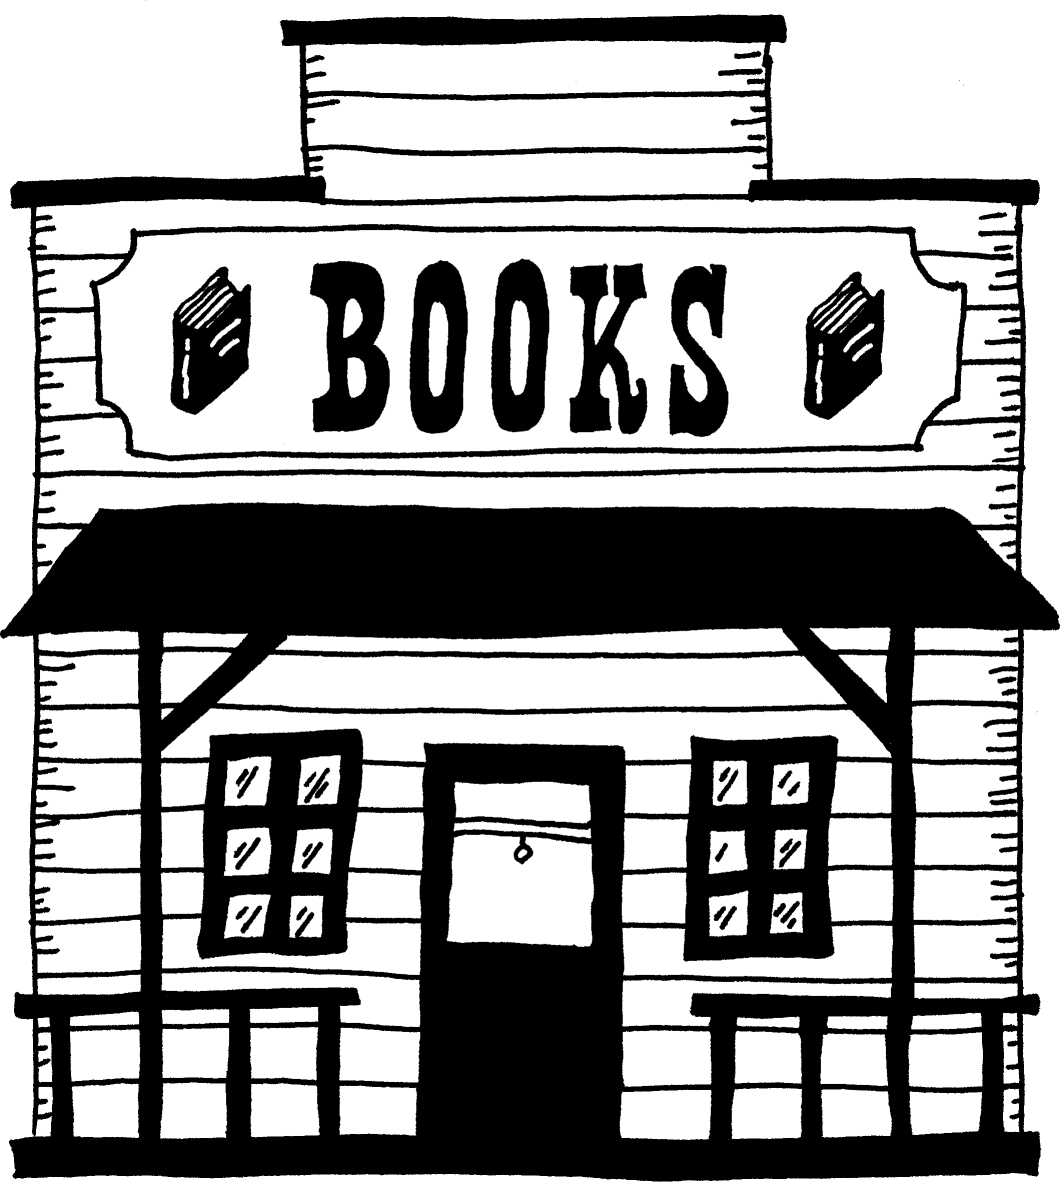 Book shop clipart transparent library Alexandria's Bookstore - West of Loathing Wiki transparent library